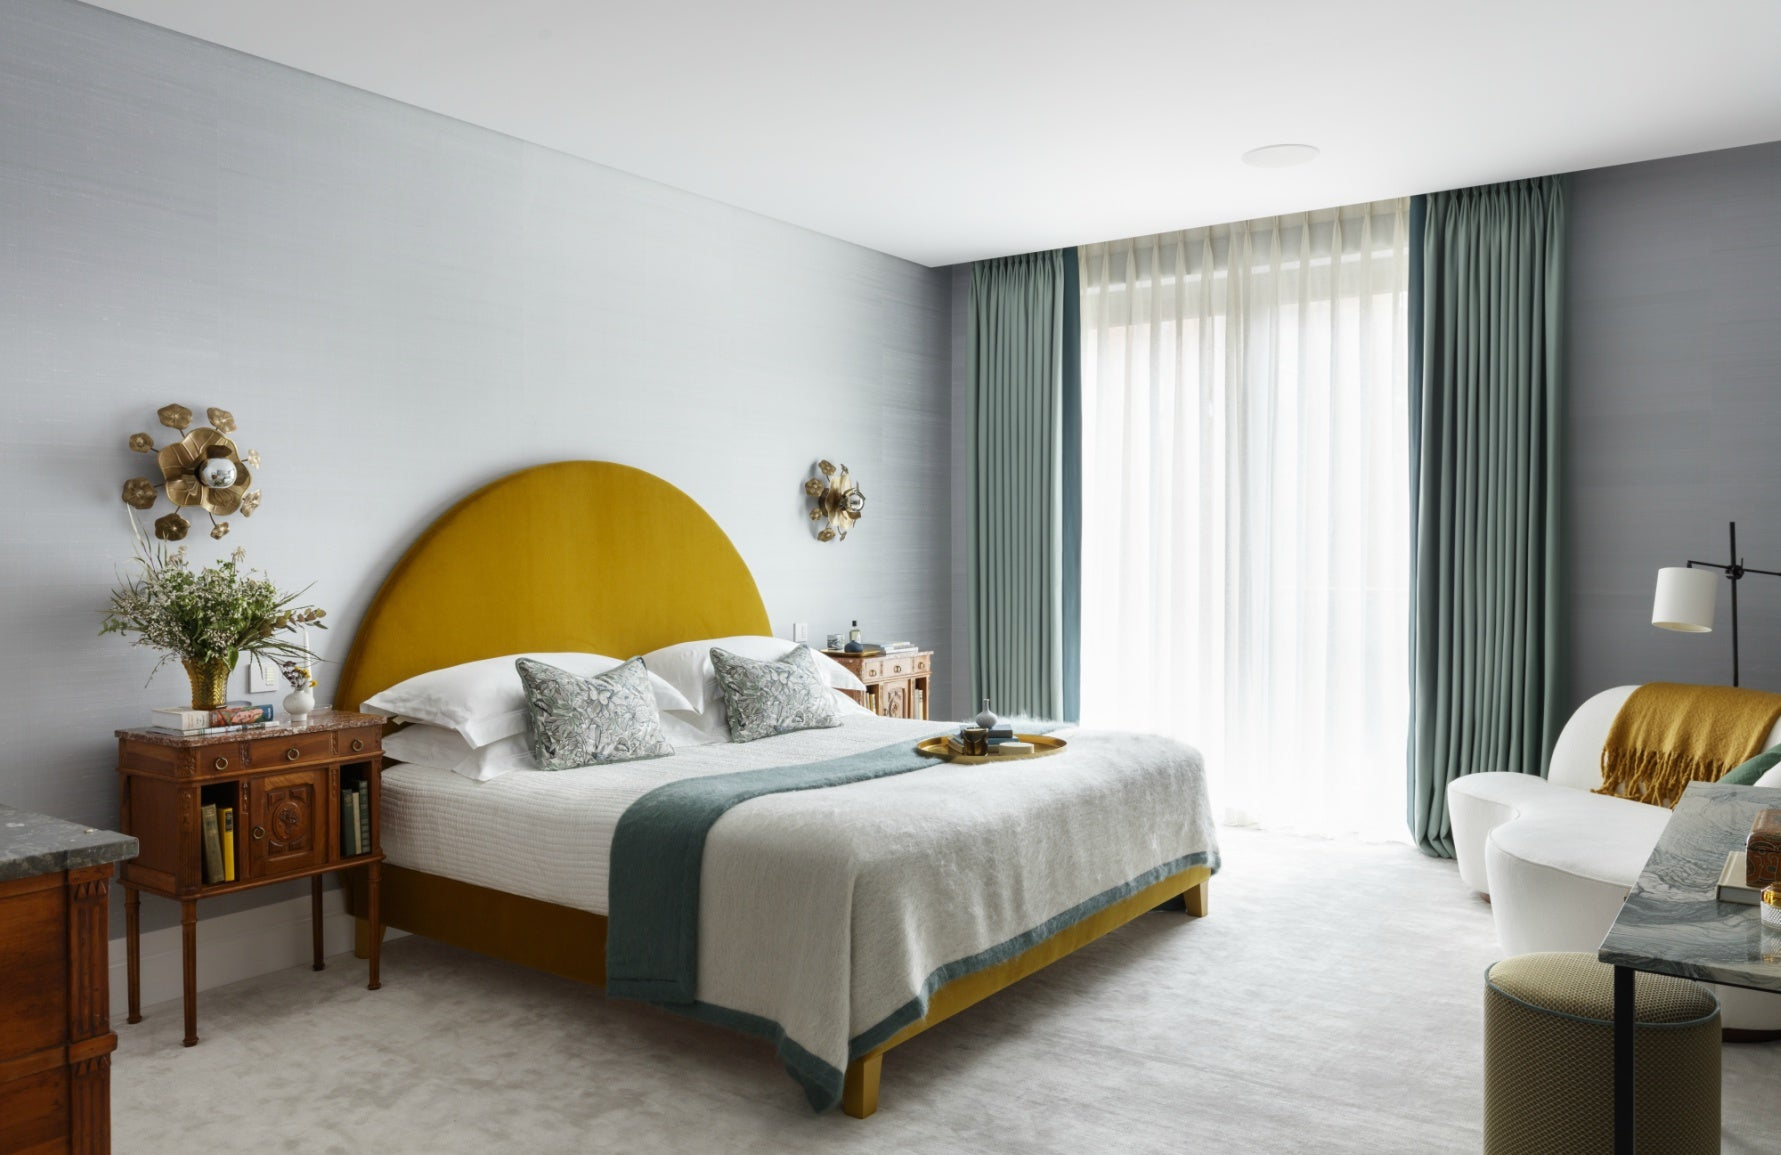 2020 Interior Design Trends | Muted colour contrasts | Studio Ashby | Read more on LuxDeco.com Style Guide